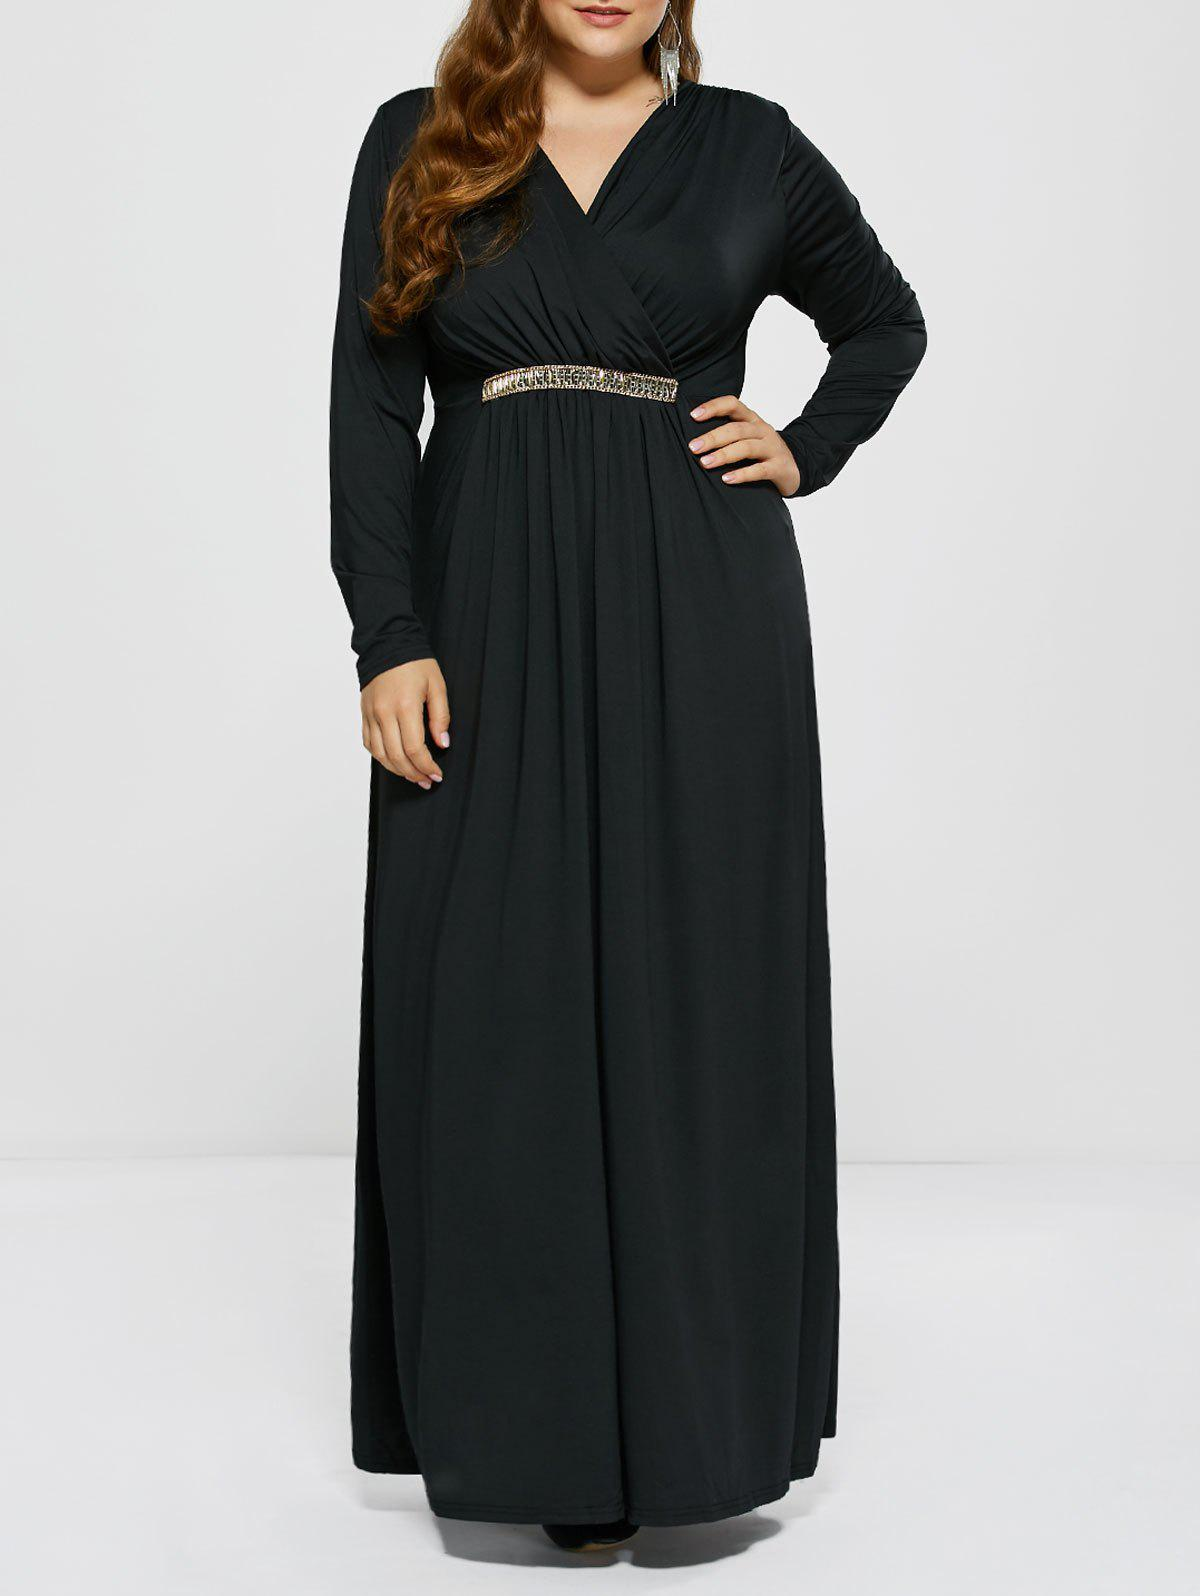 Plus Size Long Sleeve Surplice Prom Dress - BLACK L